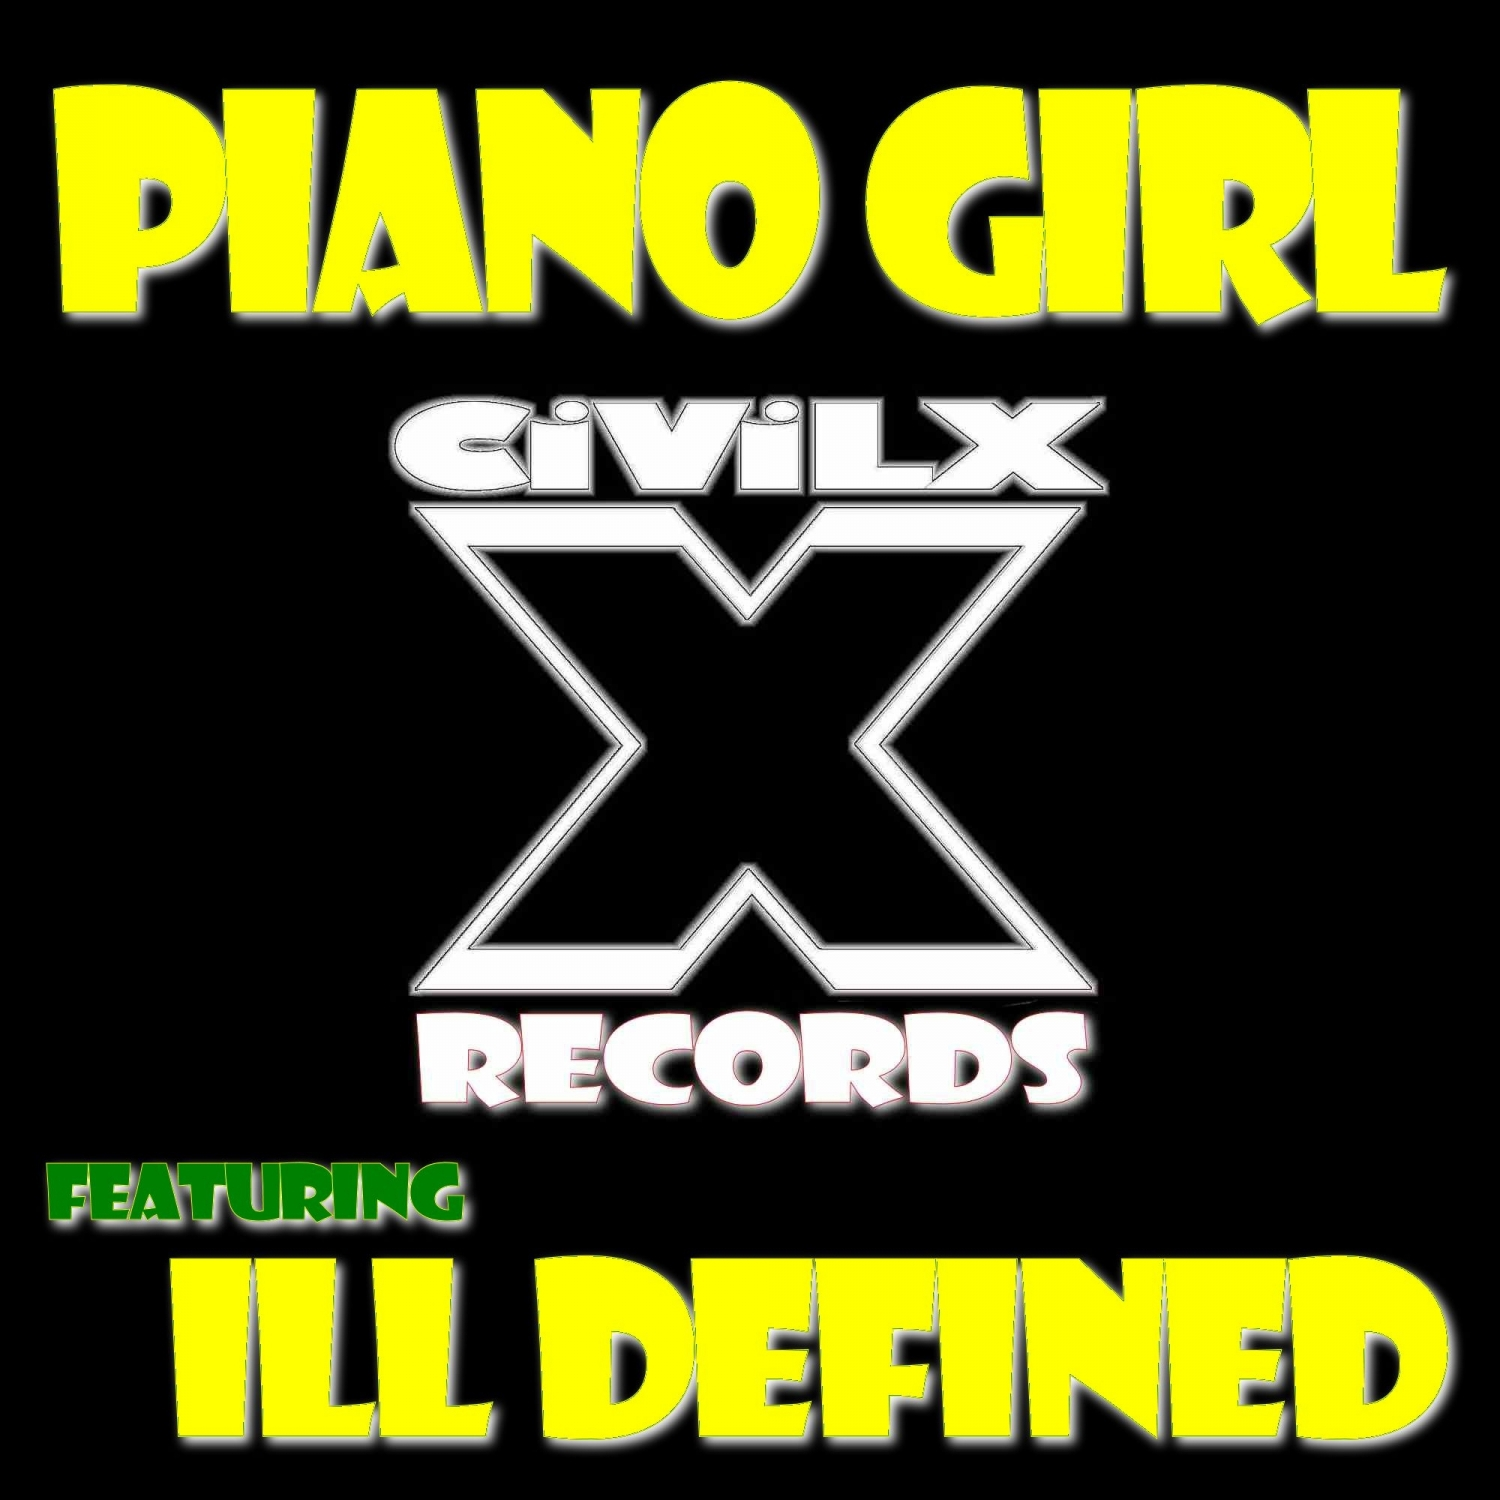 CIViLX & ill Defined - Piano Girl (feat. ill Defined)  (Original Mix)